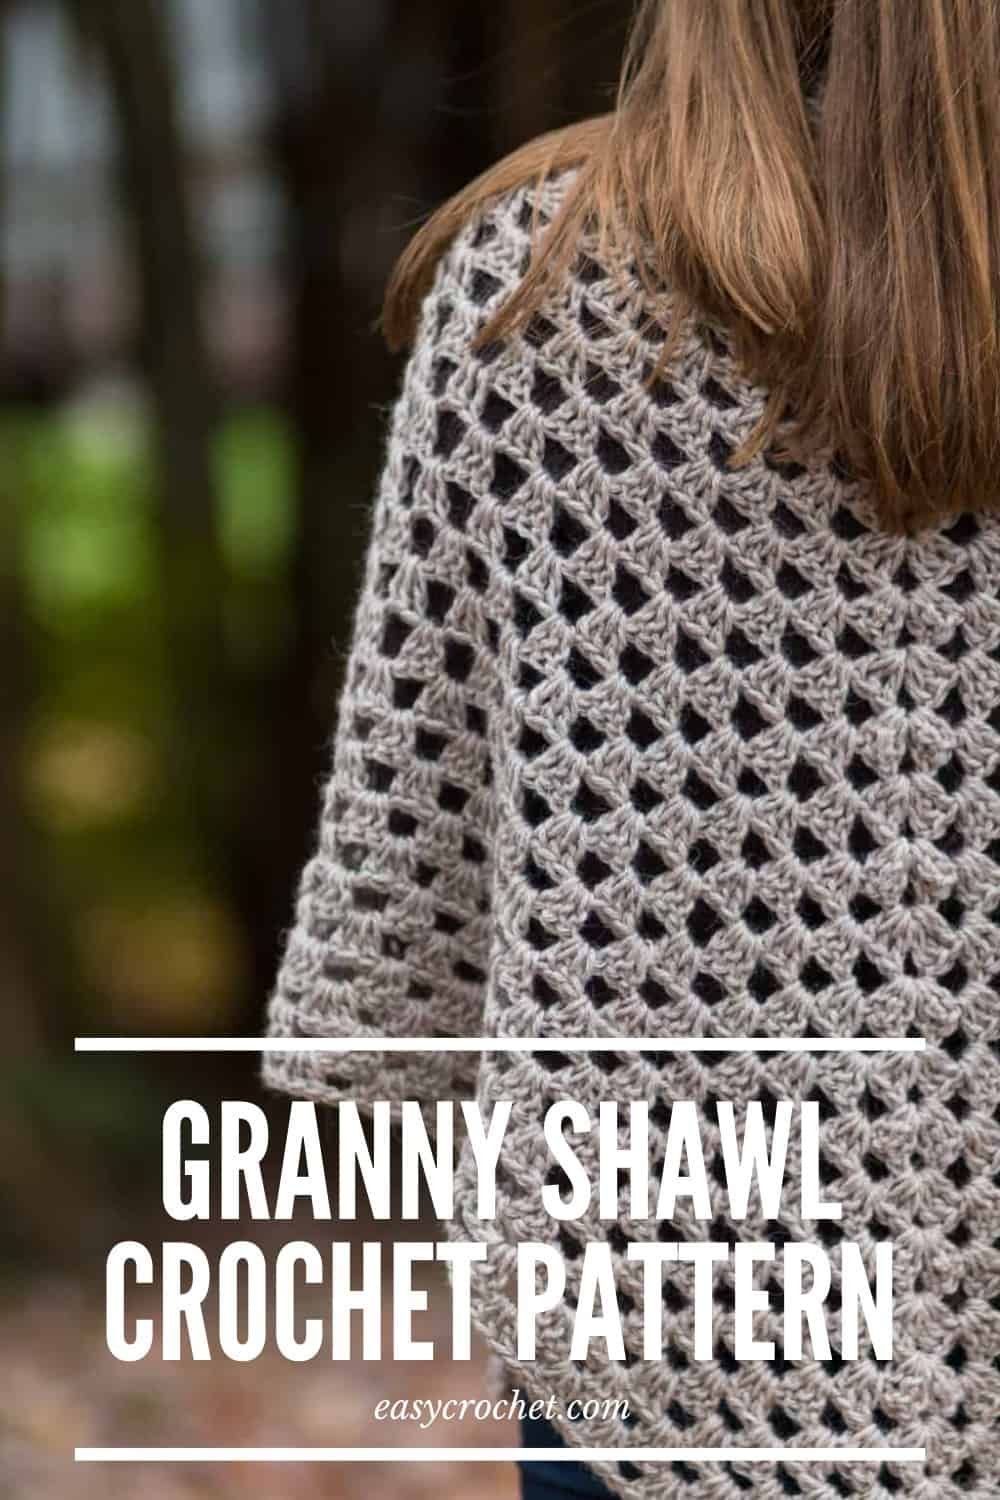 Free Crochet Granny Shawl Crochet Pattern by easycrochet.com Learn how to make this simple shawl with a video and written pattern. via @easycrochetcom